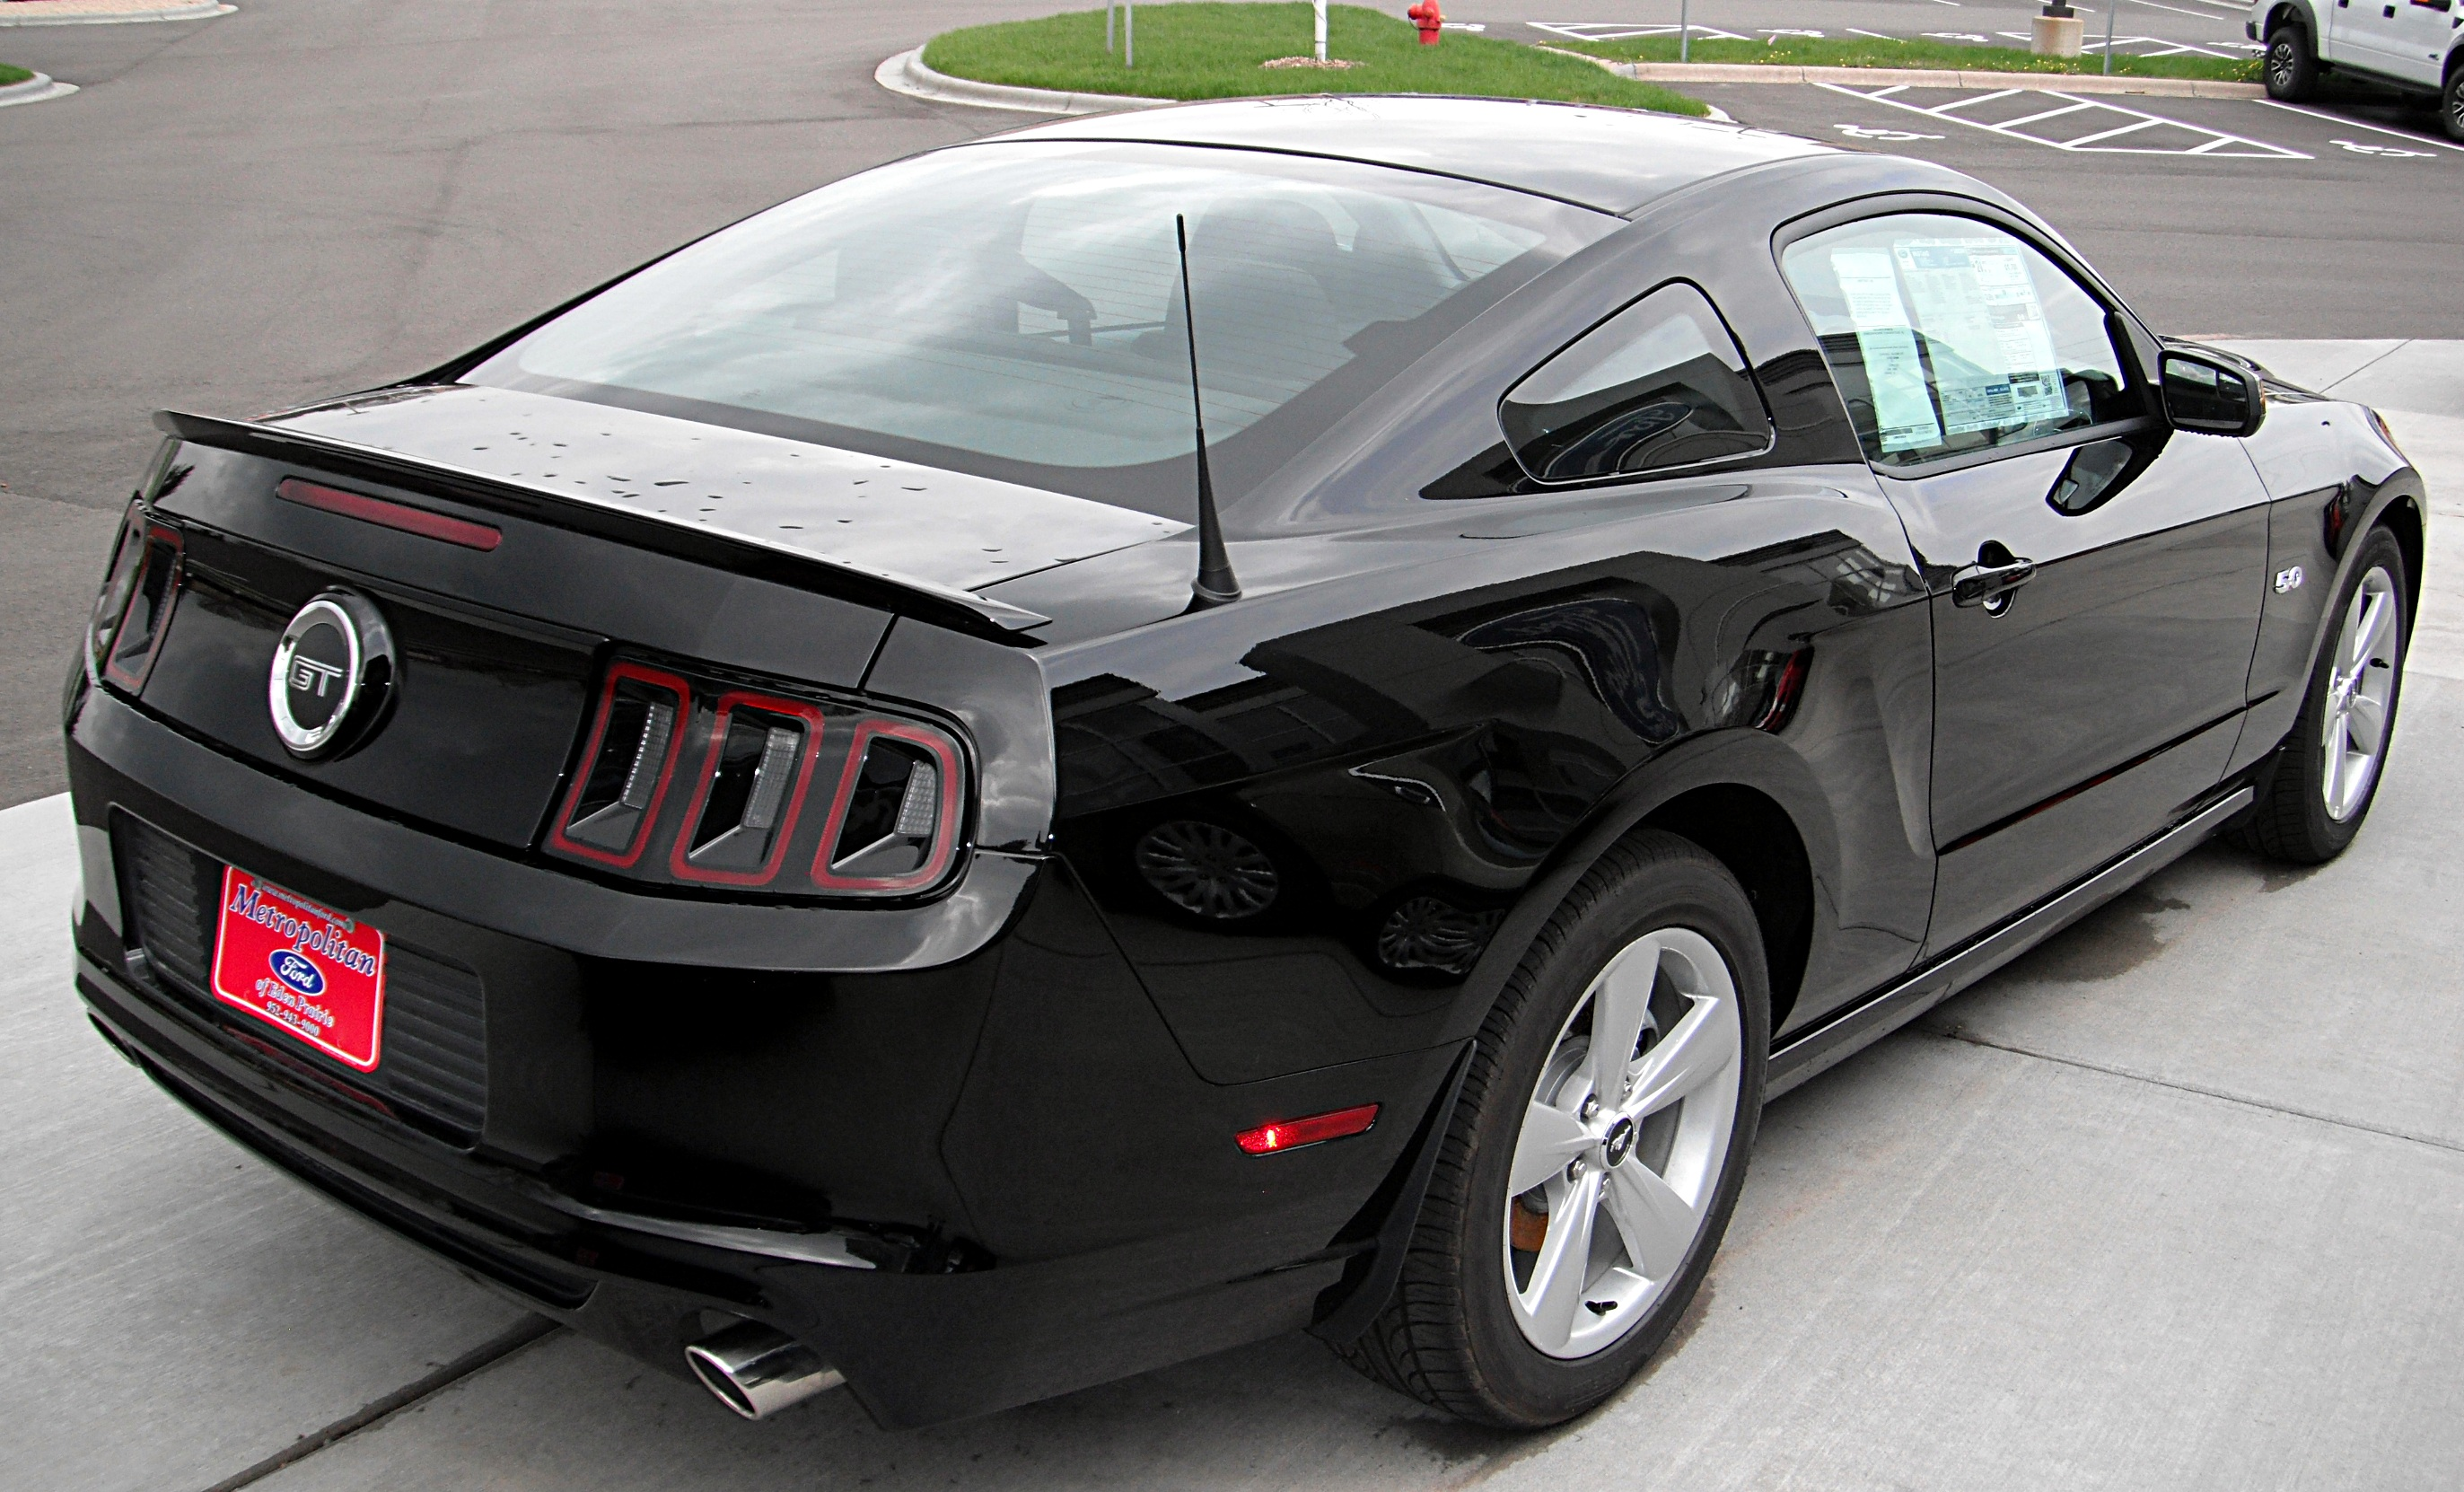 File:2013 Ford Mustang GT (rear view).jpg - Wikimedia Commons